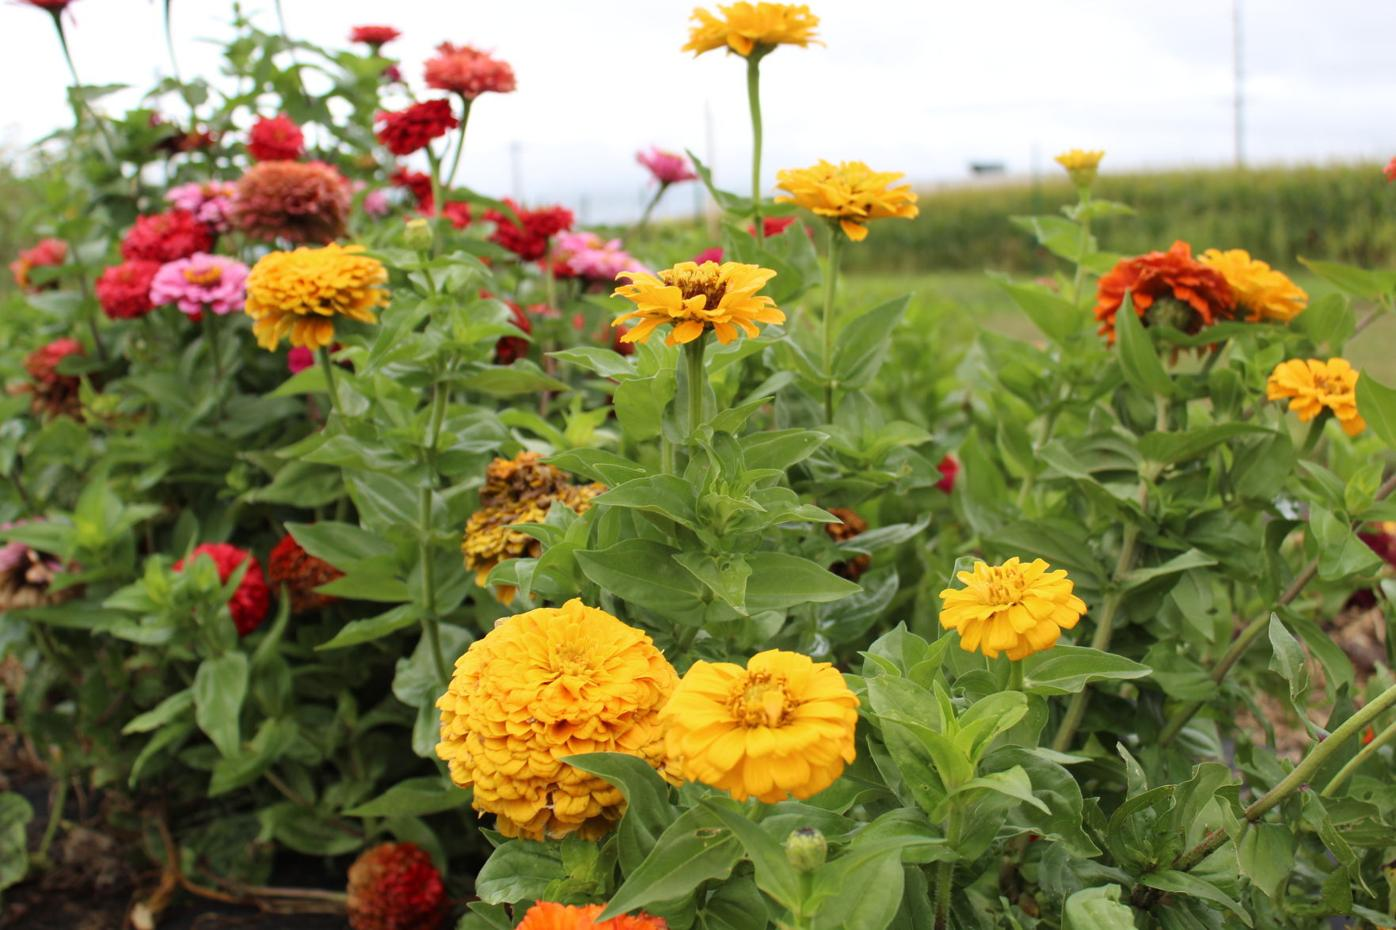 Master gardeners flowers at the Owatonna Community Garden (copy)